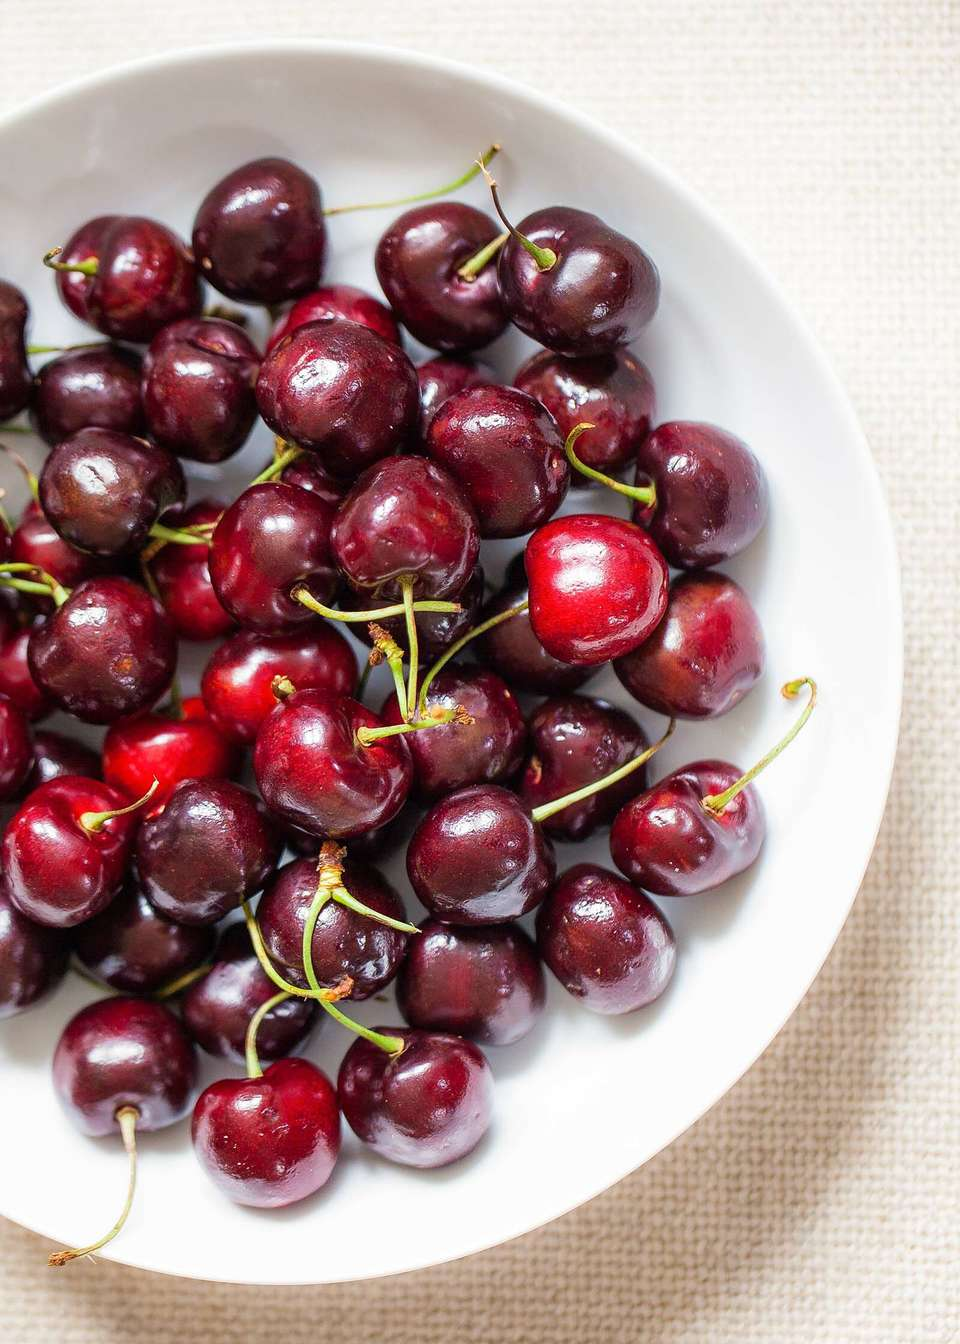 A white bowl filled with red cherries.